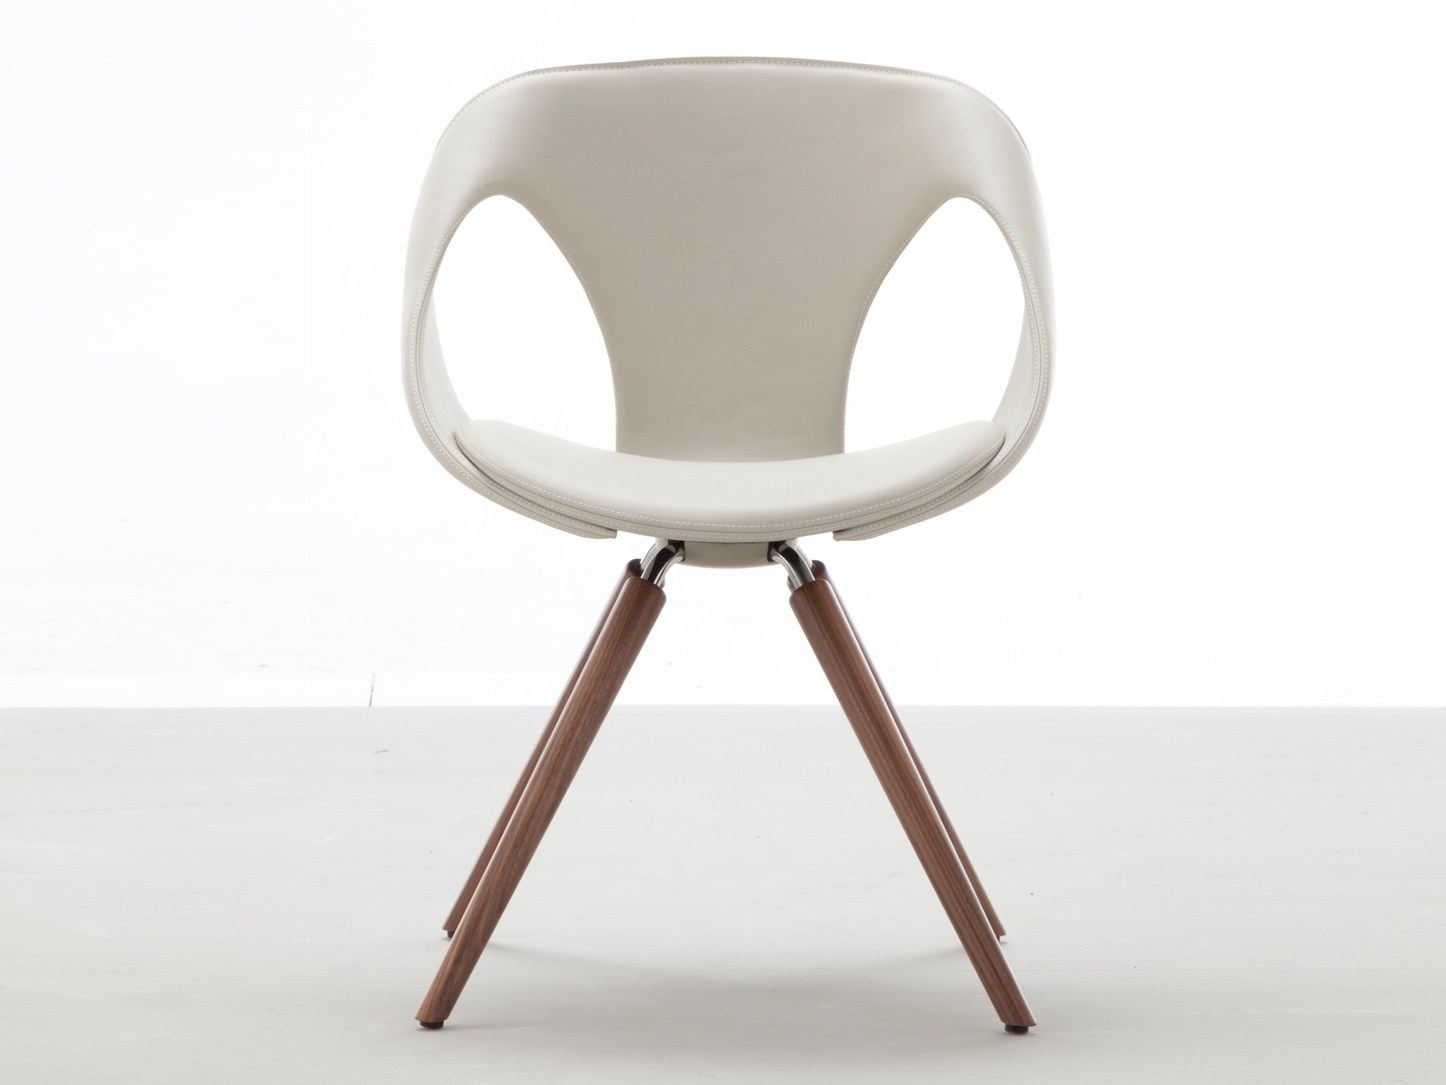 UP CHAIR